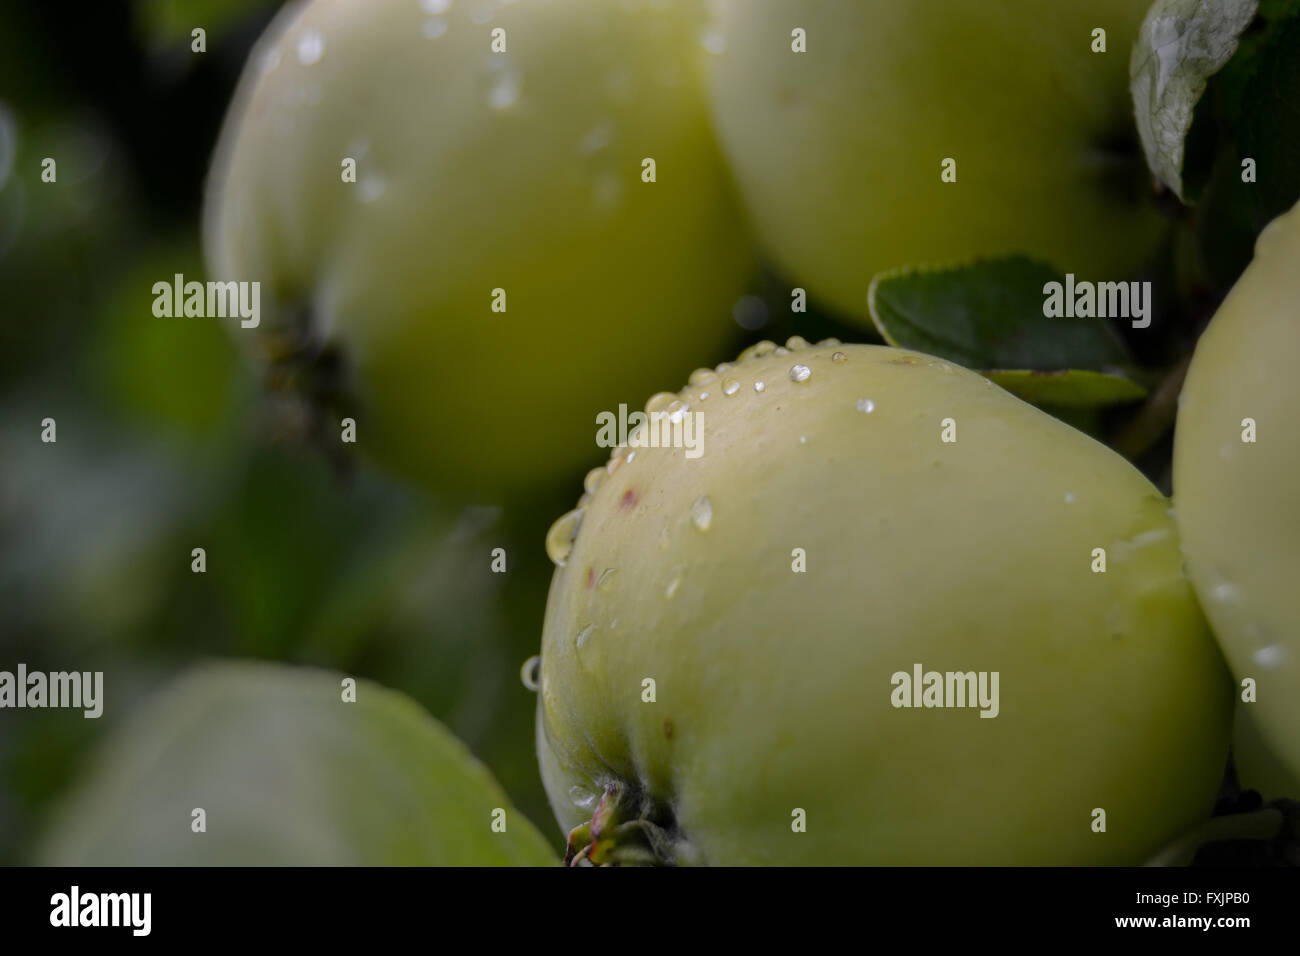 Green apples in a an apple tree in the rainy weather Stock Photo